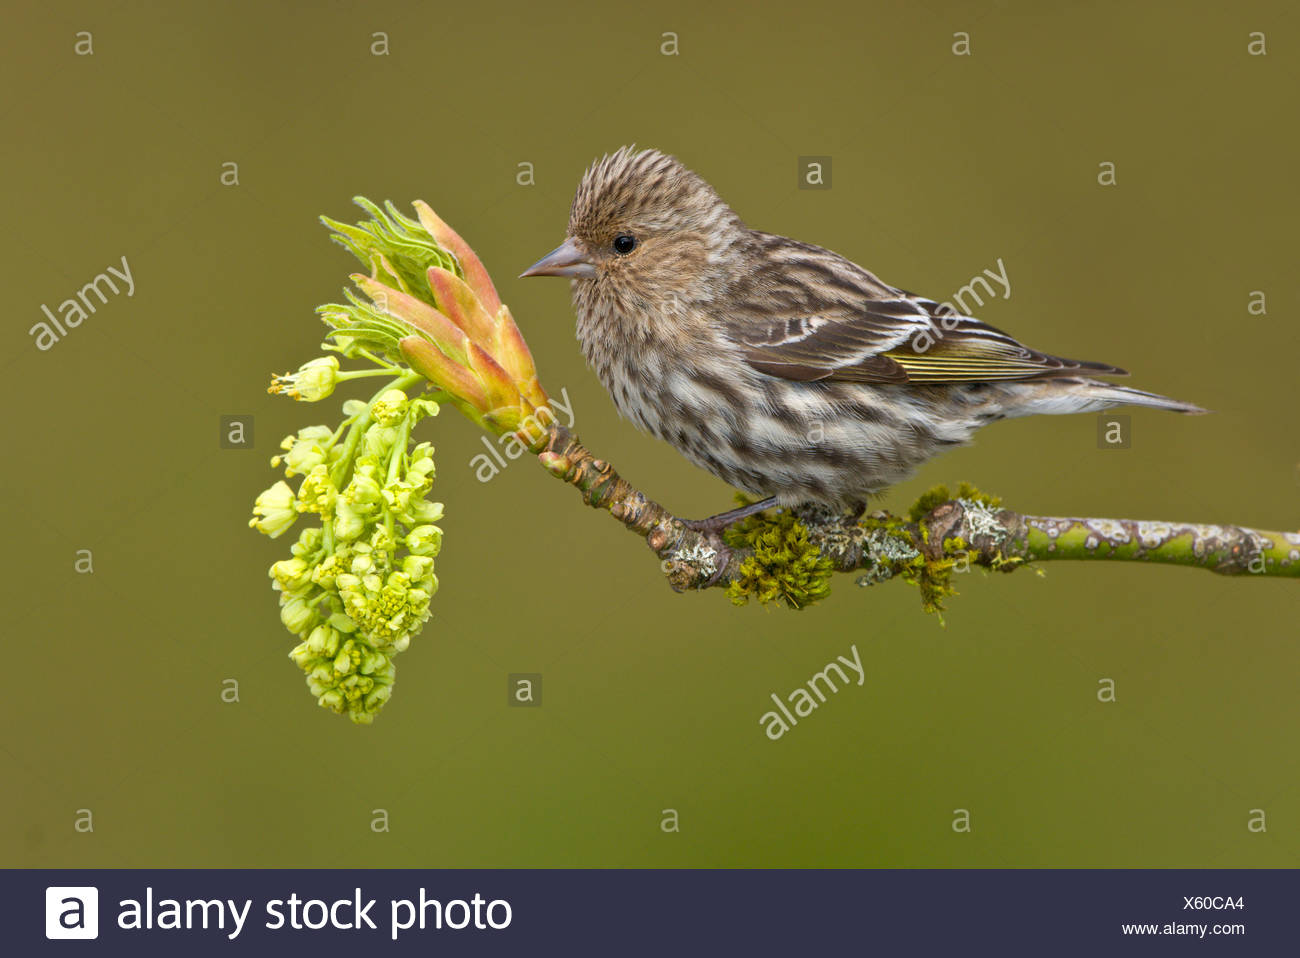 Pine siskin (Carduelis pinus) perched on a budding maple tree branch, Victoria, Vancouver Island, British Columbia, Canada - Stock Image